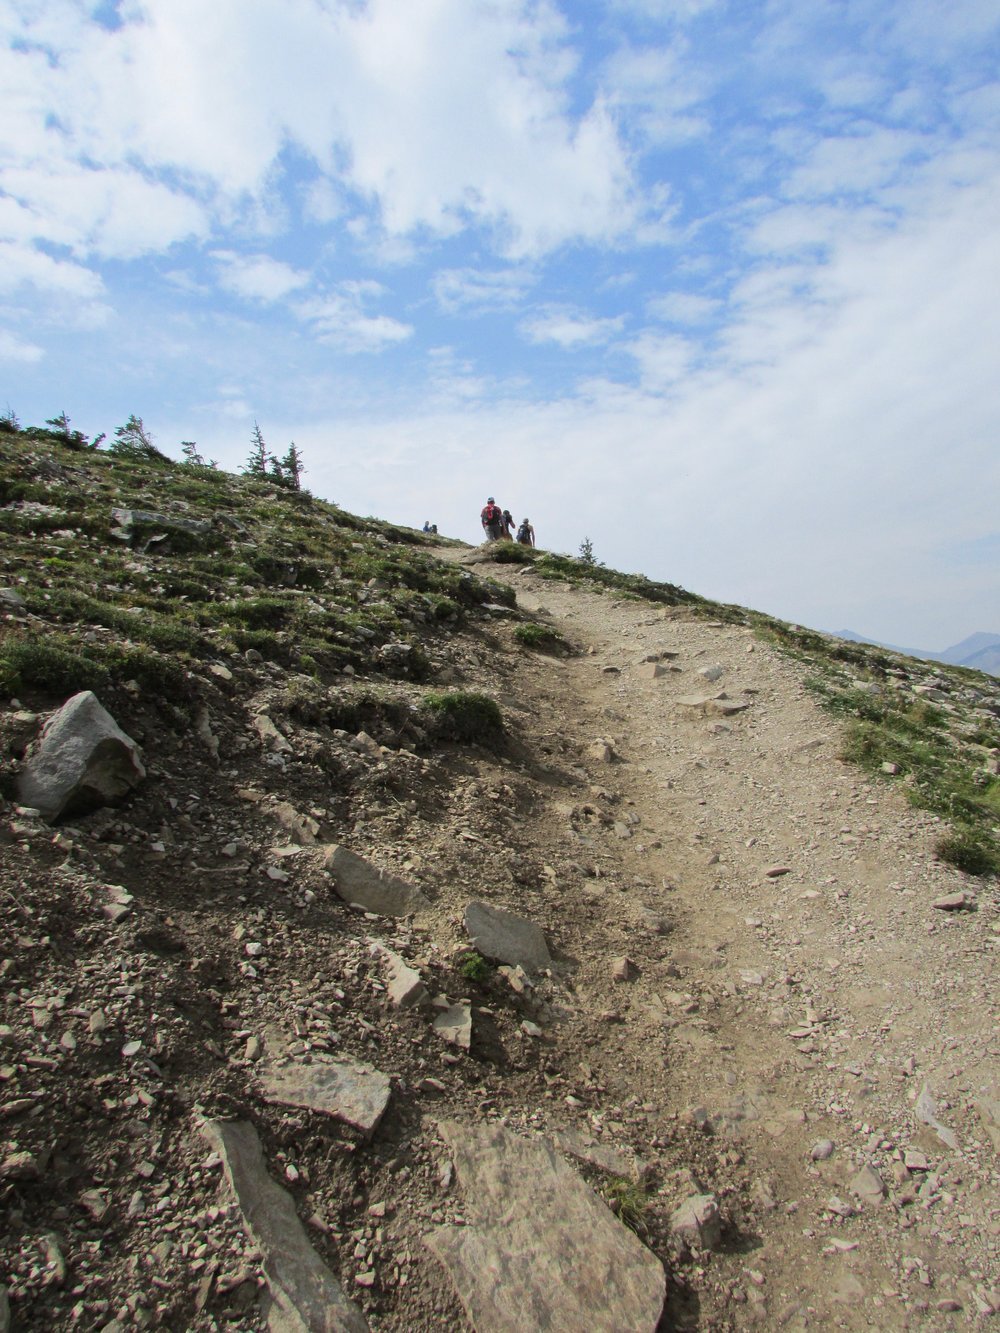 The scramble to the summit is steep and exposed to the elements